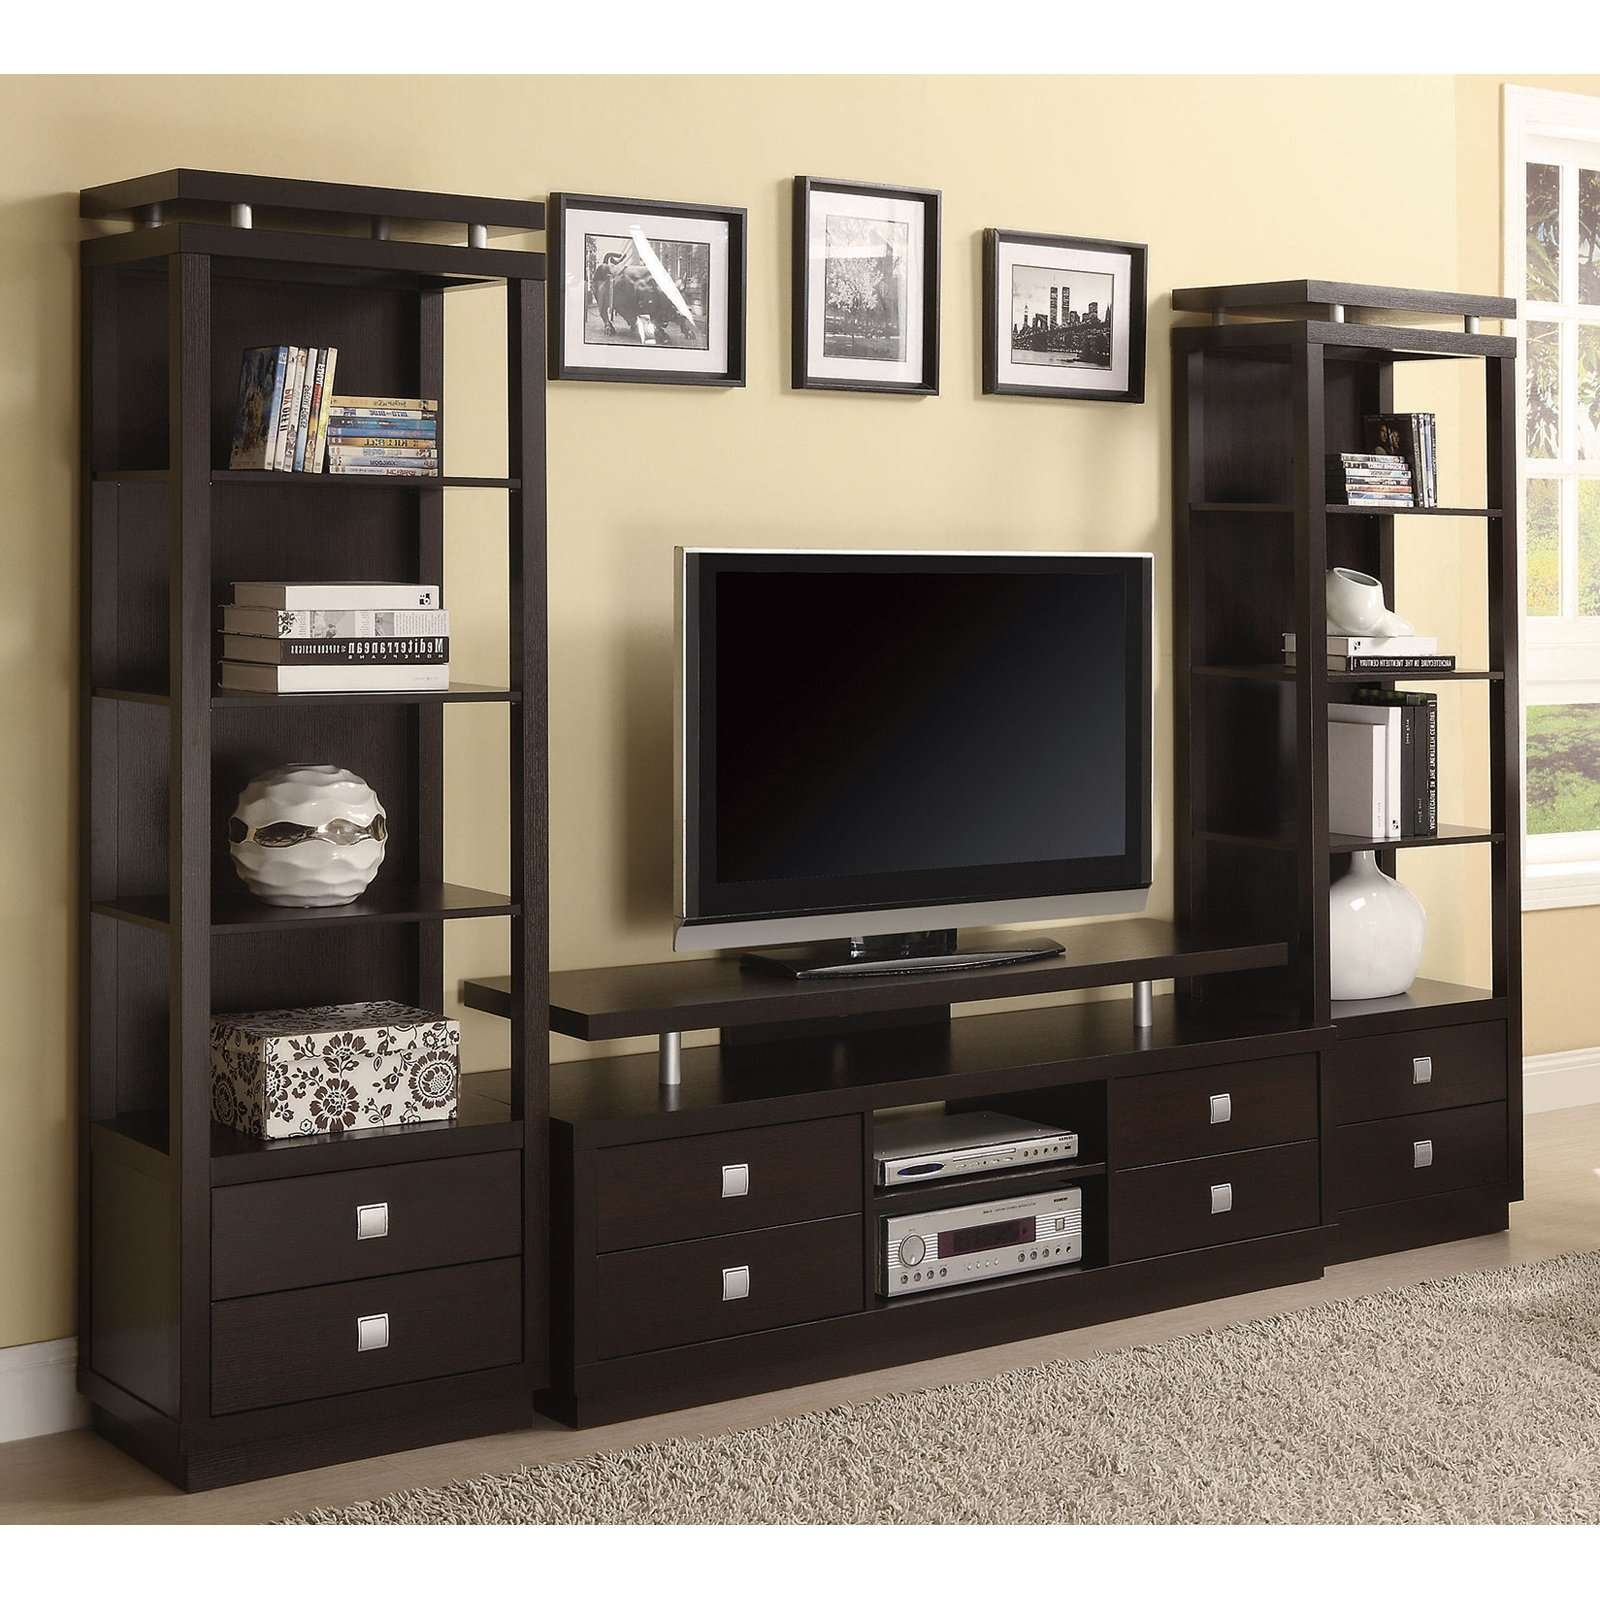 Tv Stands Awesome Entertainment Centers Inch Furnitures Center Regarding Tv Stands With Drawers And Shelves (View 10 of 15)